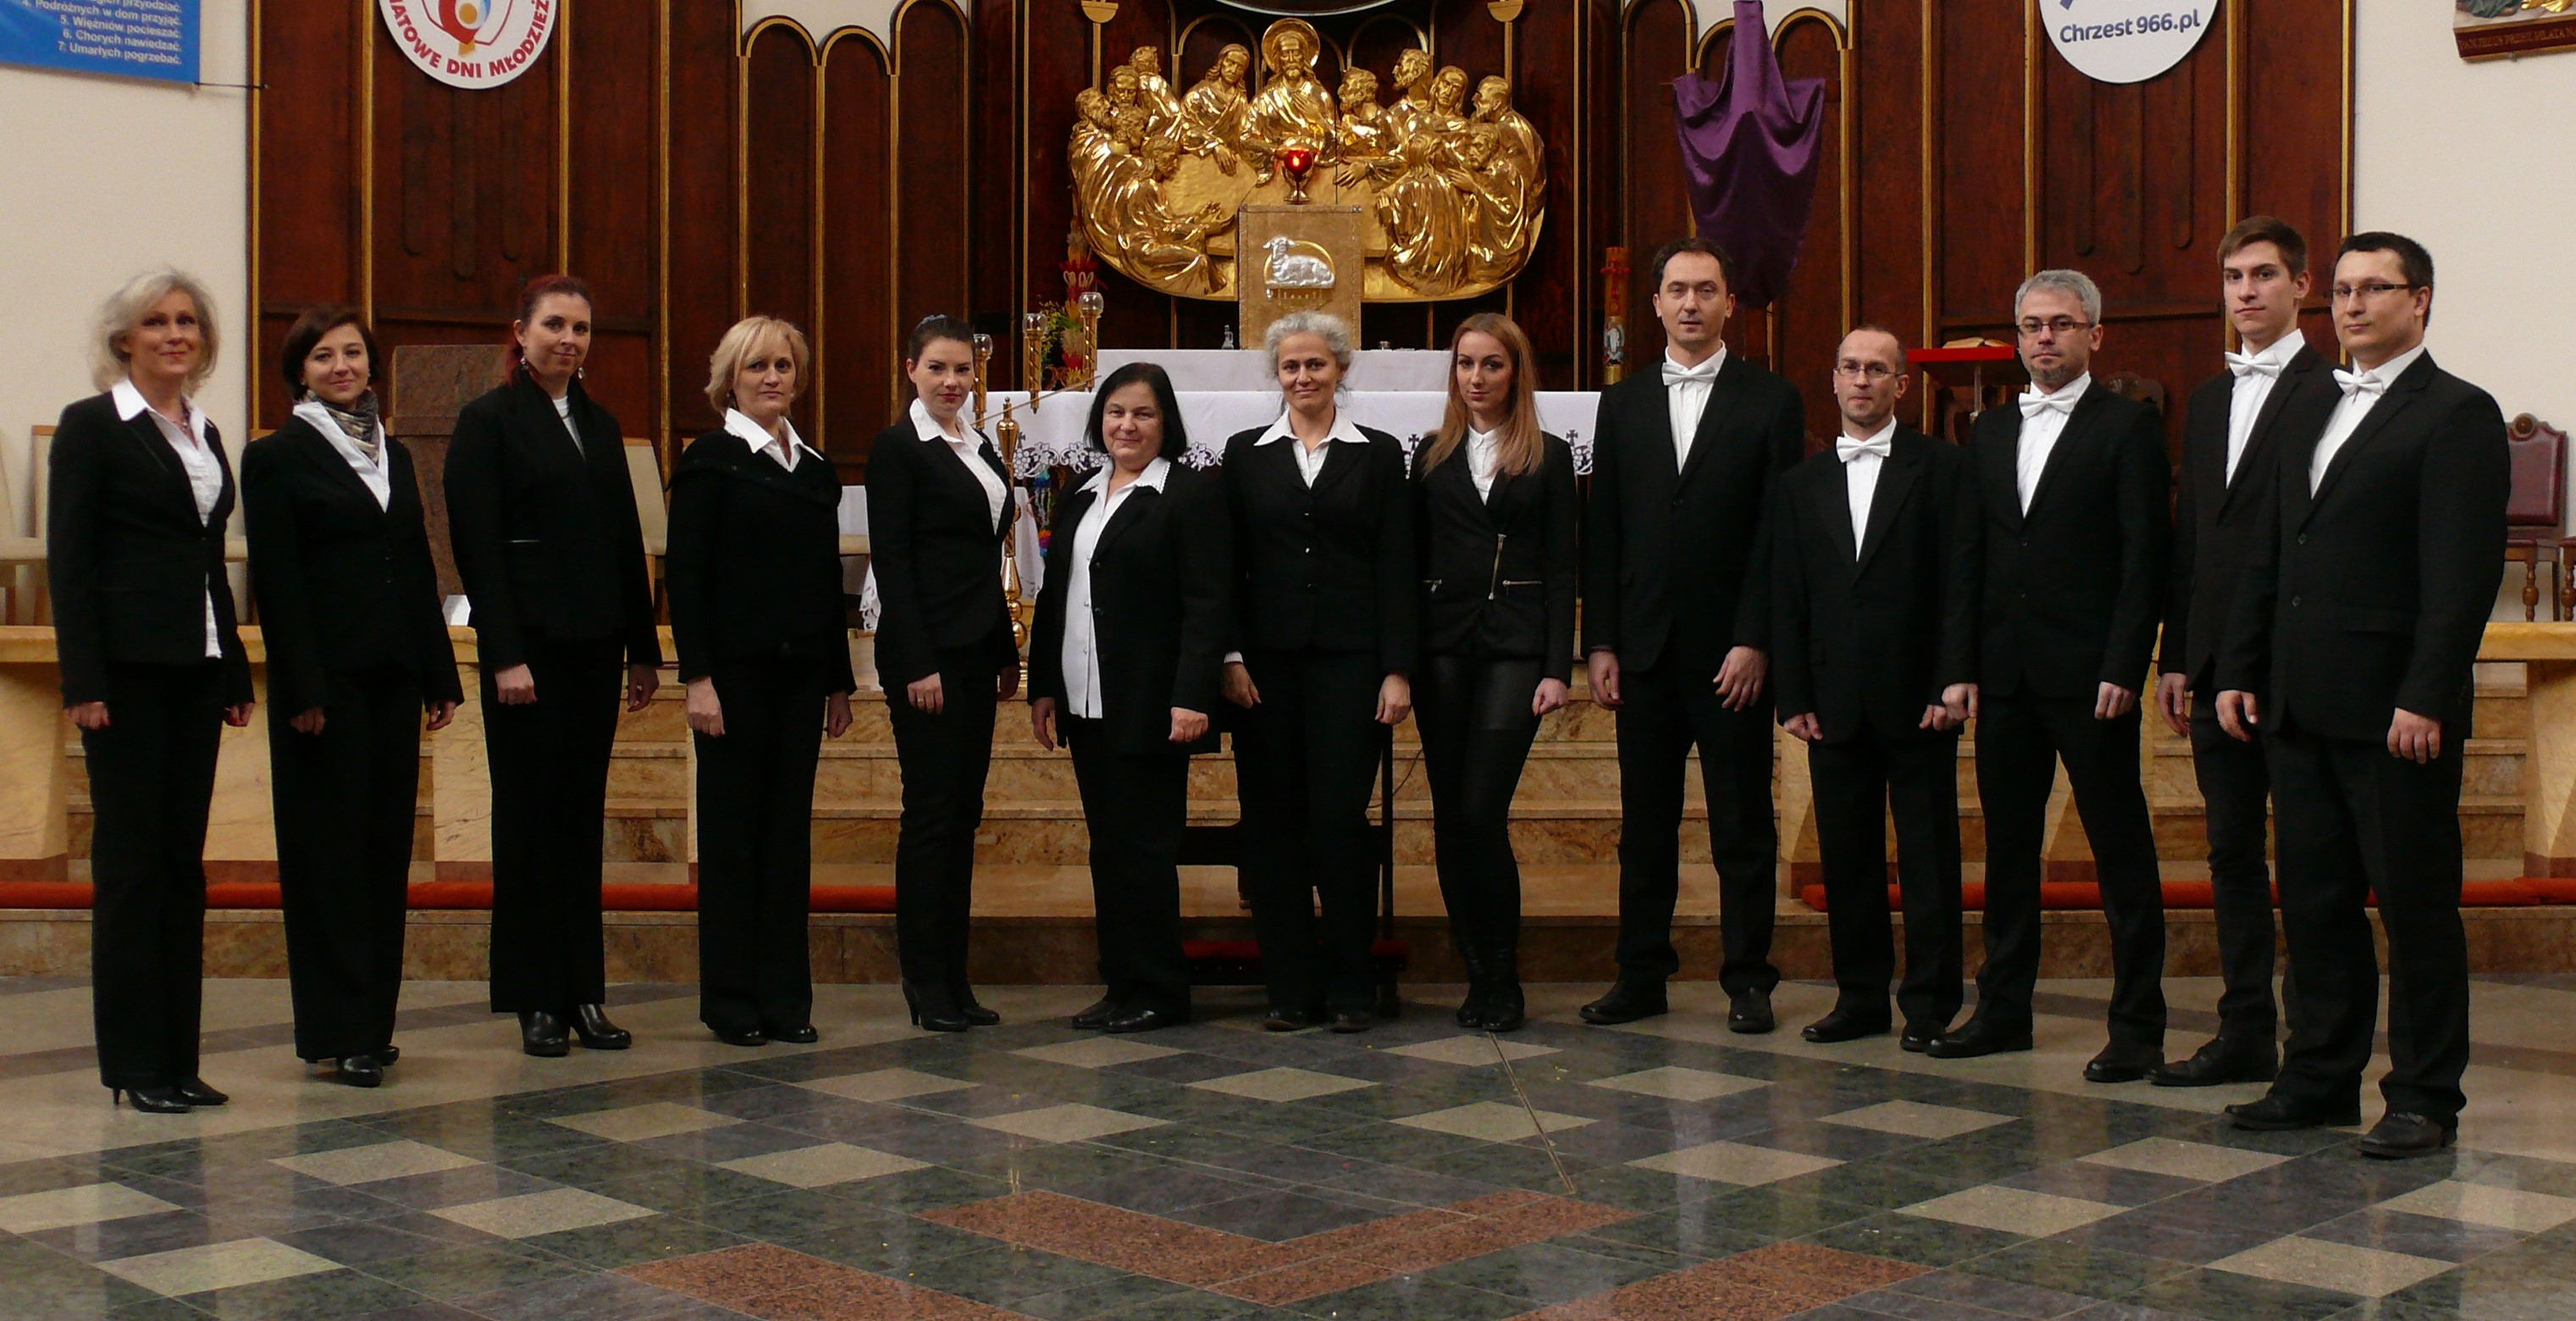 Members of Cantus Animae